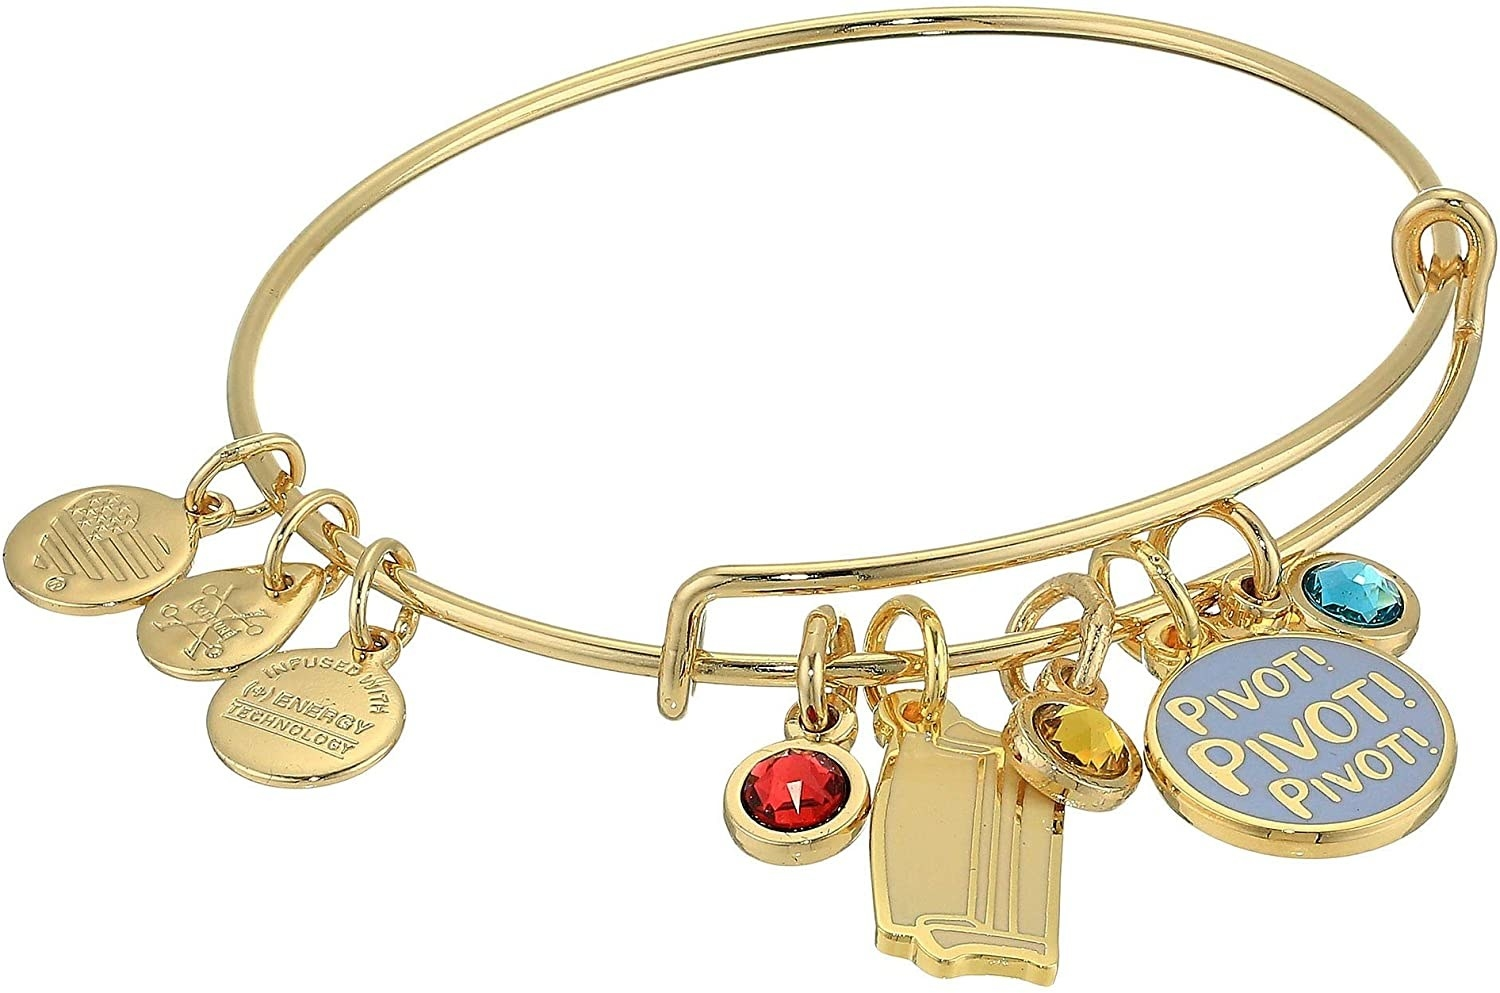 """a gold bangle with a charm that says """"pivot!"""" on it, a couch charm, and three colored stone charms"""